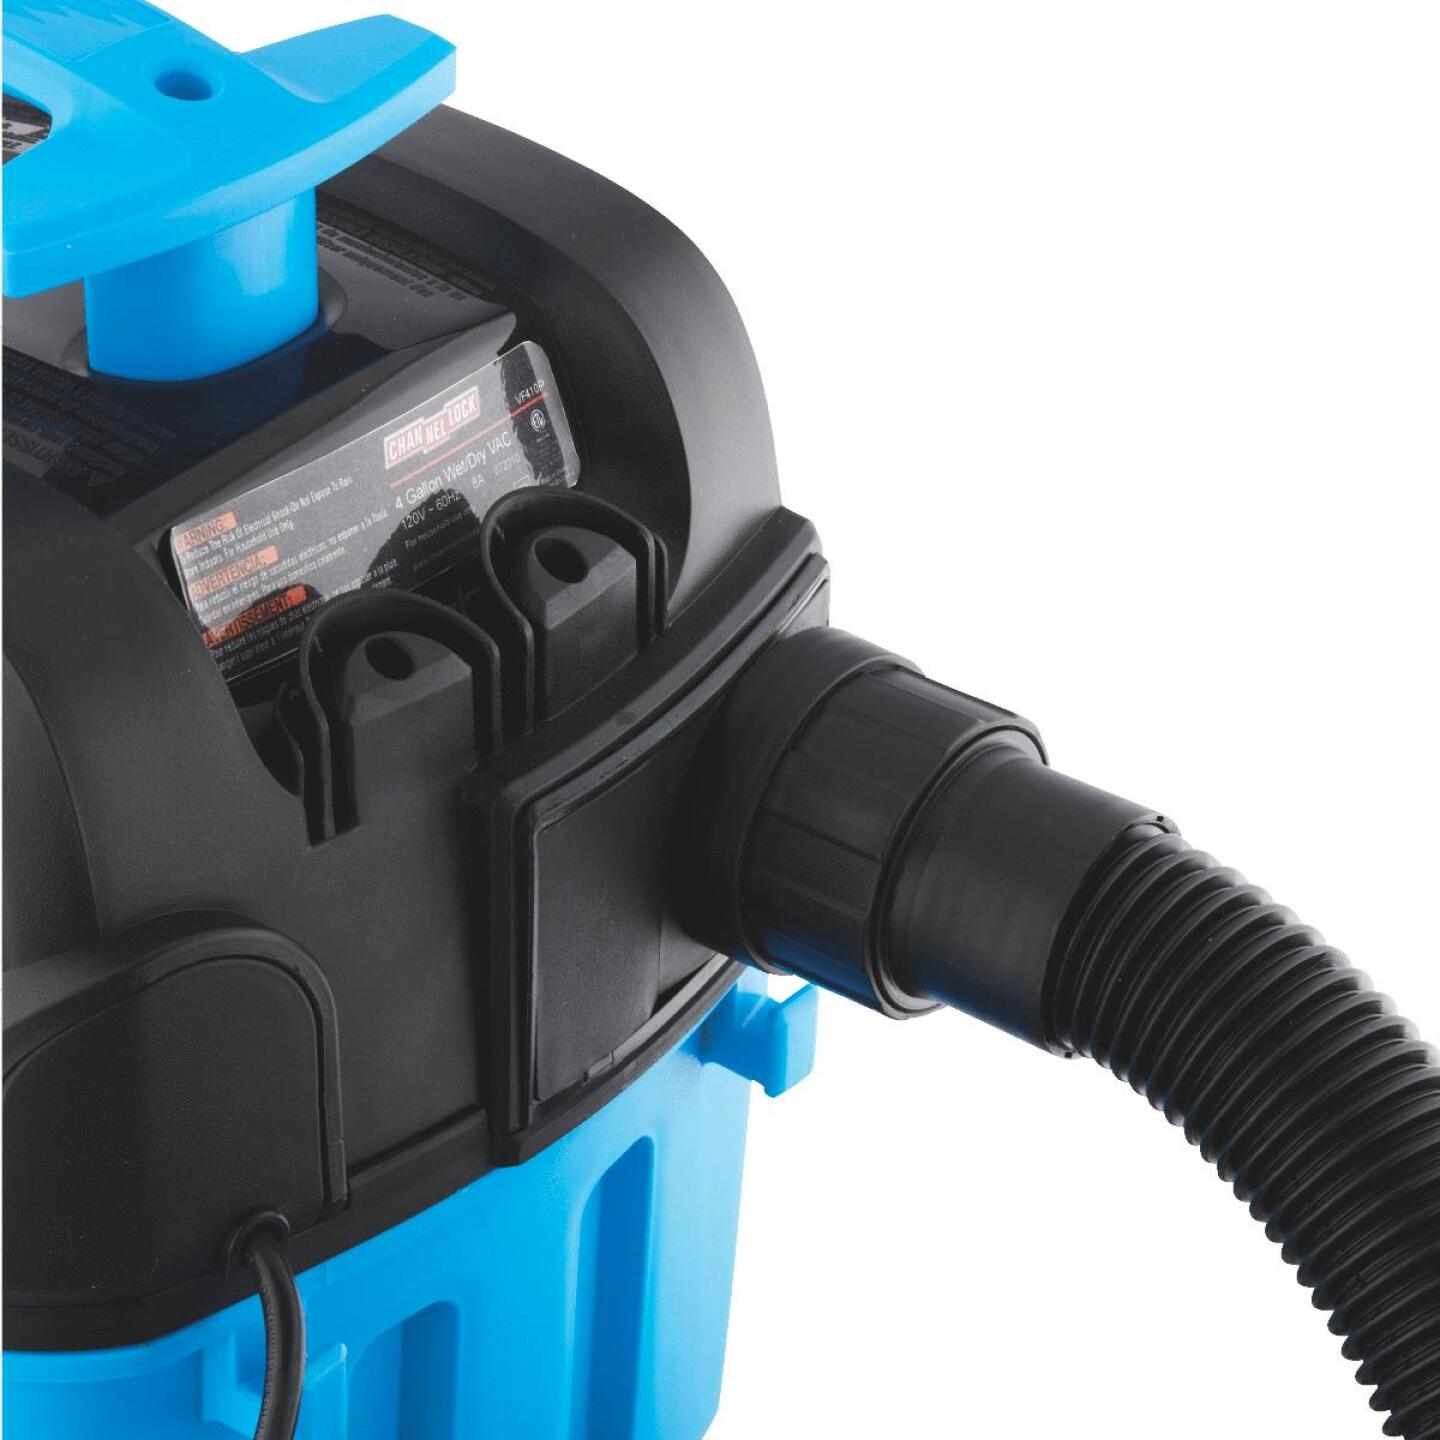 Channellock 4 Gal. 5.0-Peak HP Contractor Wet/Dry Vacuum Image 10